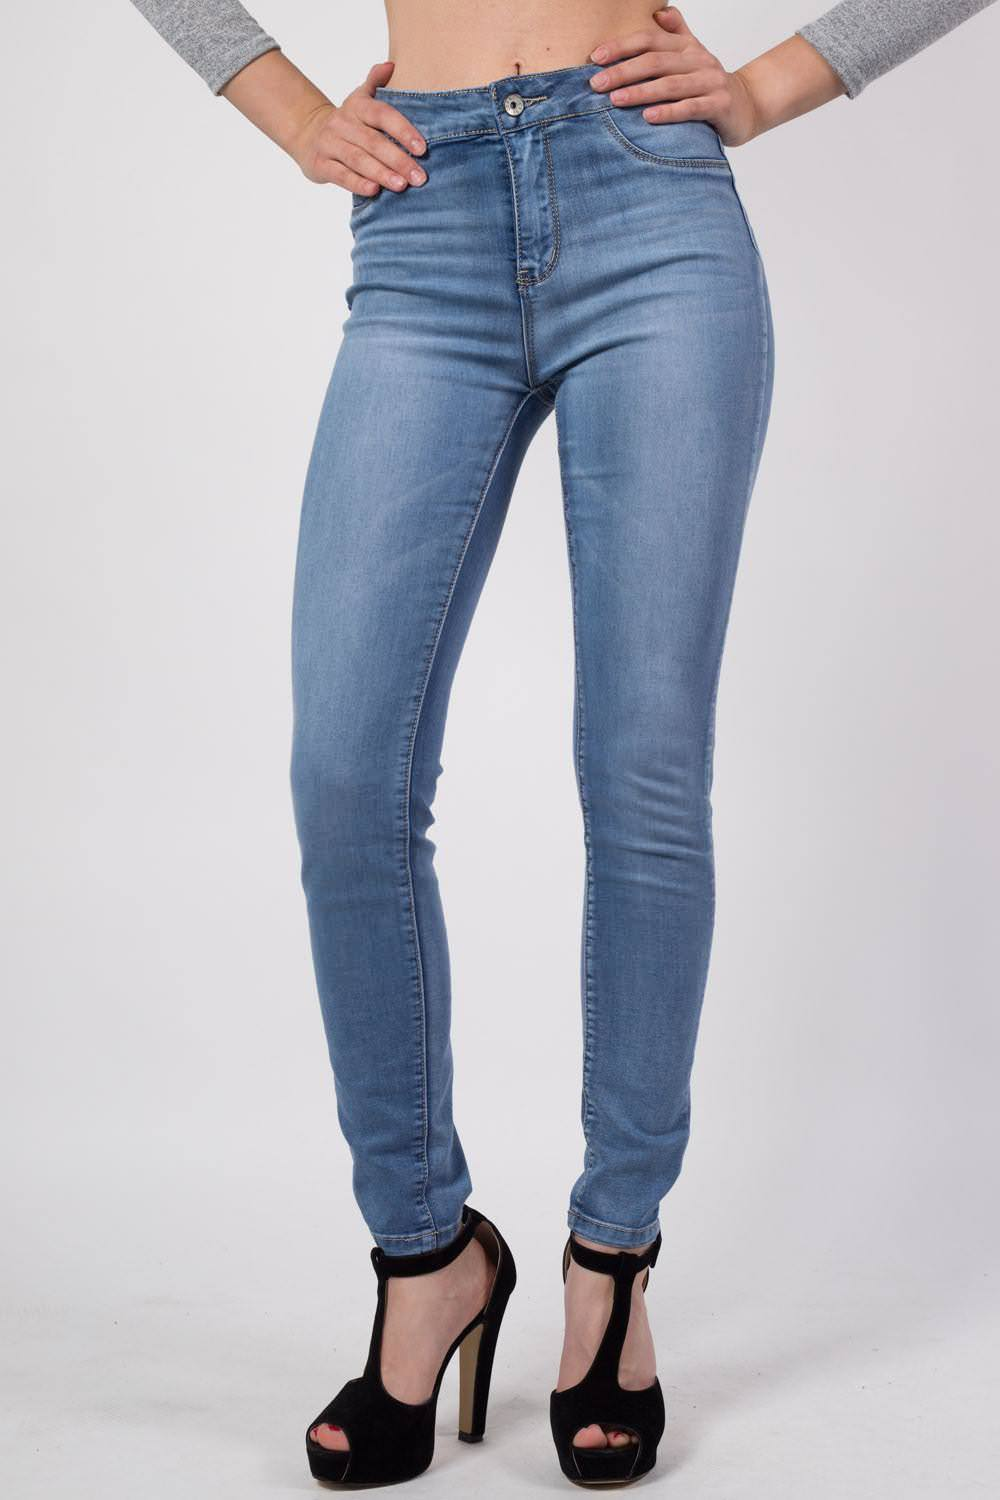 High Waisted Skinny Jeans in Denim MODEL FRONT 2